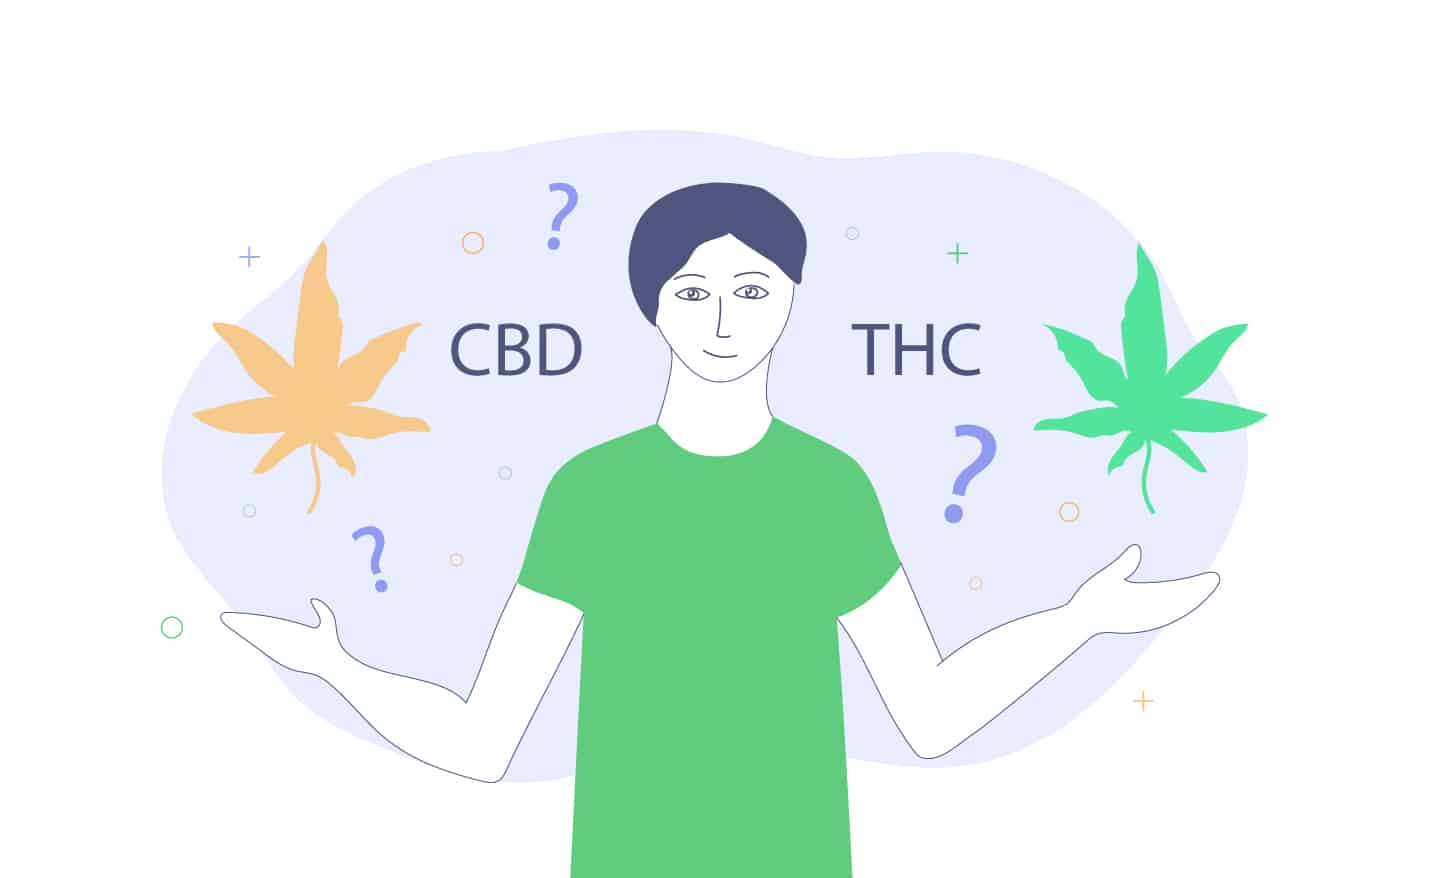 Whats the difference with CBD and THC